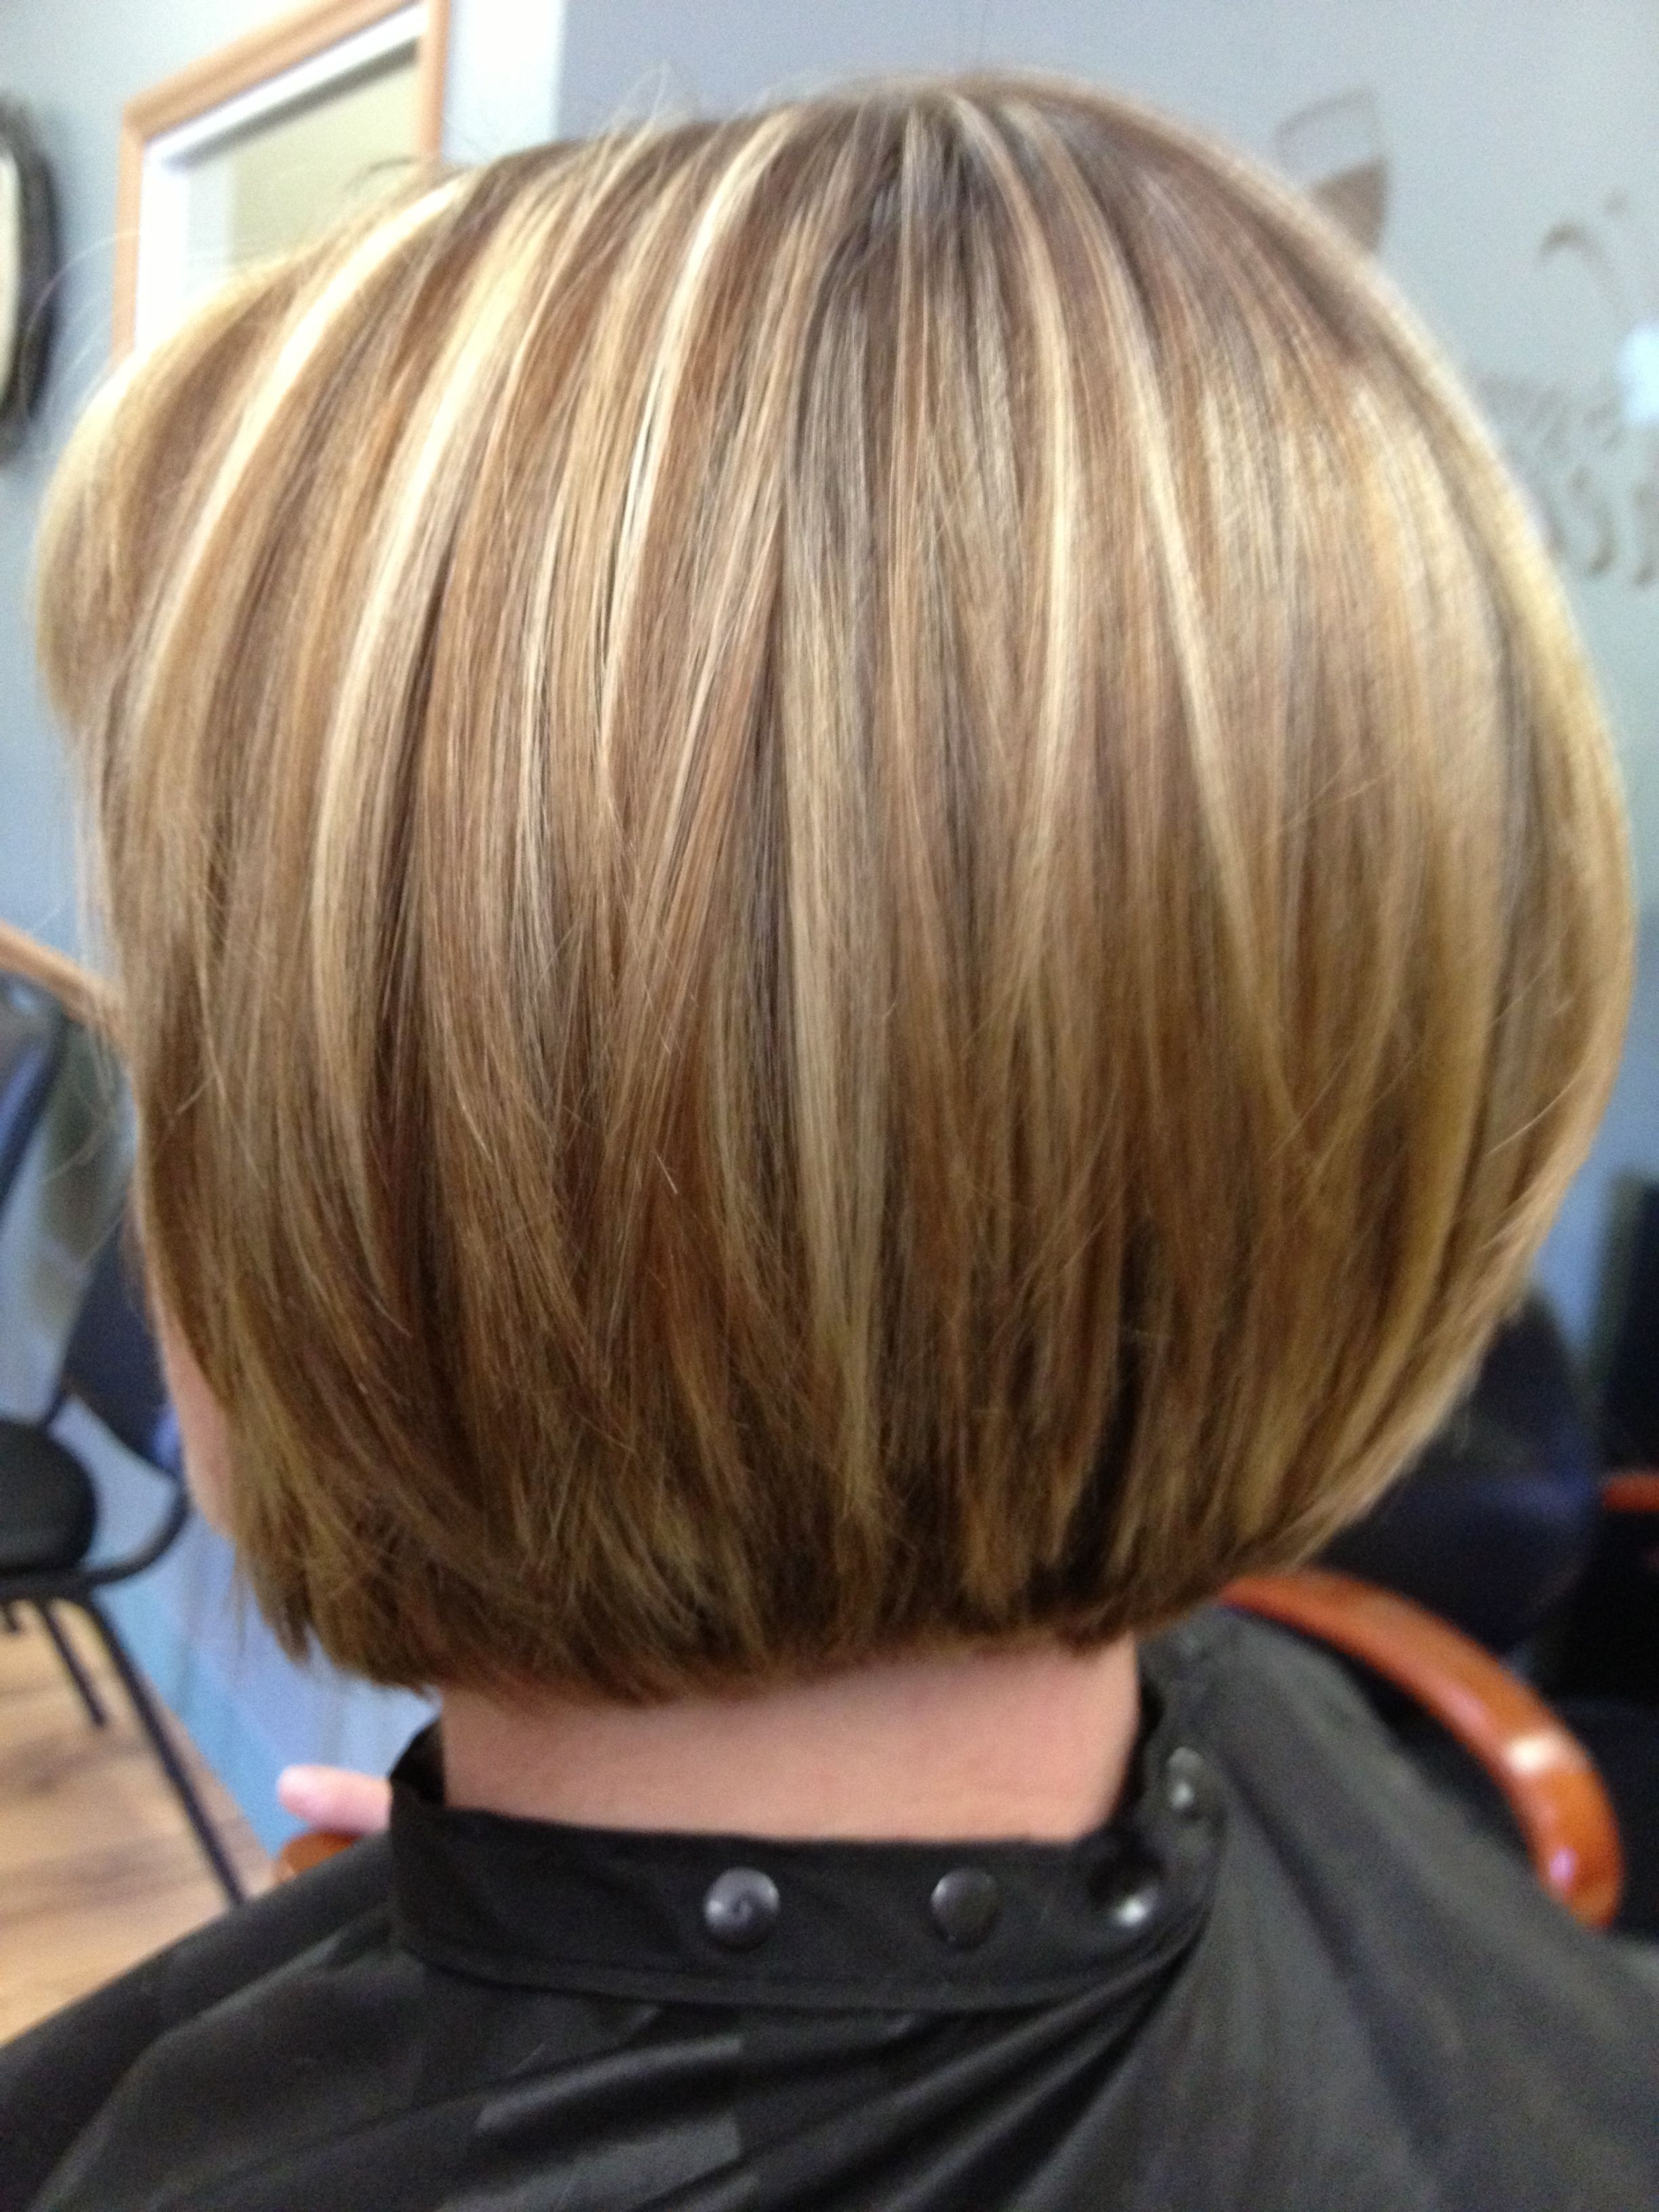 Round Bob | All Things Hair | Pinterest | Hair Styles, Bob Throughout Rounded Bob Hairstyles With Stacked Nape (View 2 of 20)